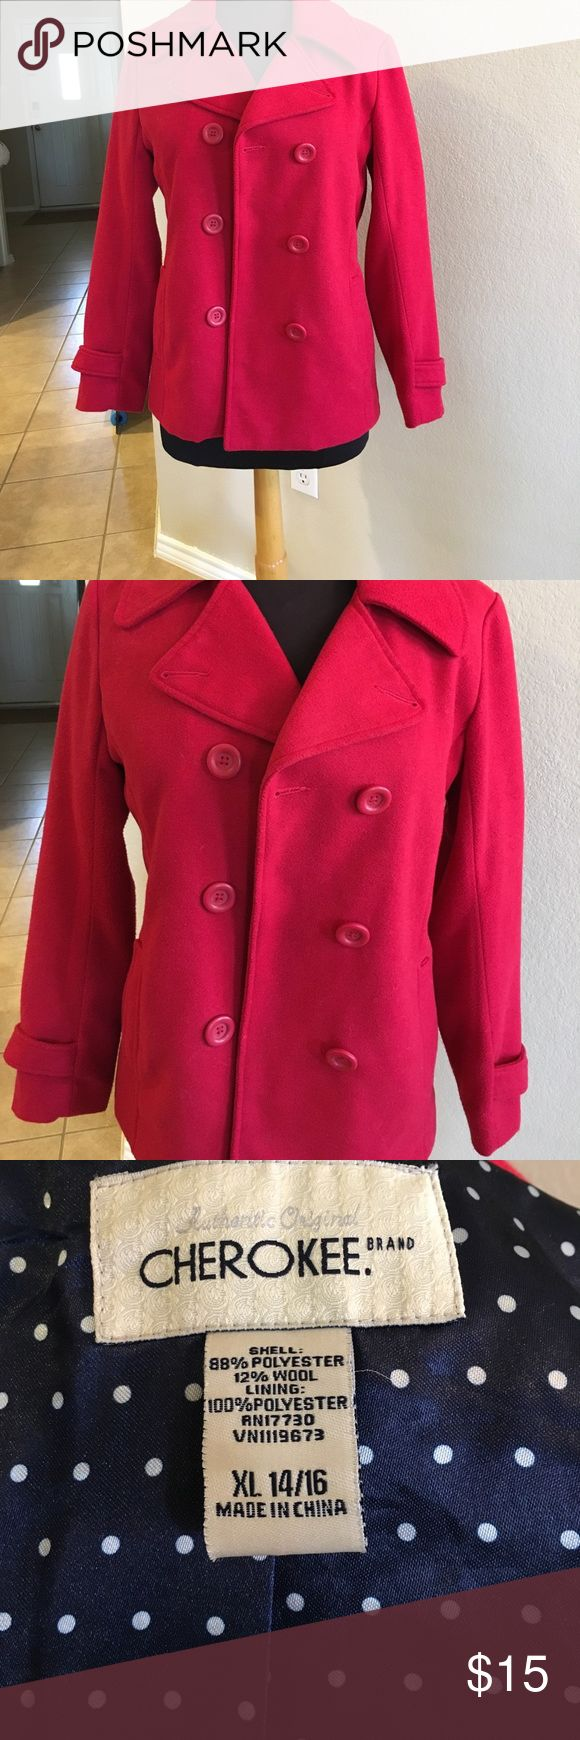 """Cherokee red pea coat!🎈 This coat has been worn but it 's still in great shape! There are no stains, rips or flaws. Lined in navy/white polka dot poly fabric. Best of all, it's machine washable! Fabric content & laundry instructions on pics. 19"""" across chest, 26.5"""" length. Coat runs small, I listed as a L. PLEASE USE MEASUREMENTS!😊 Cherokee Jackets & Coats Pea Coats"""